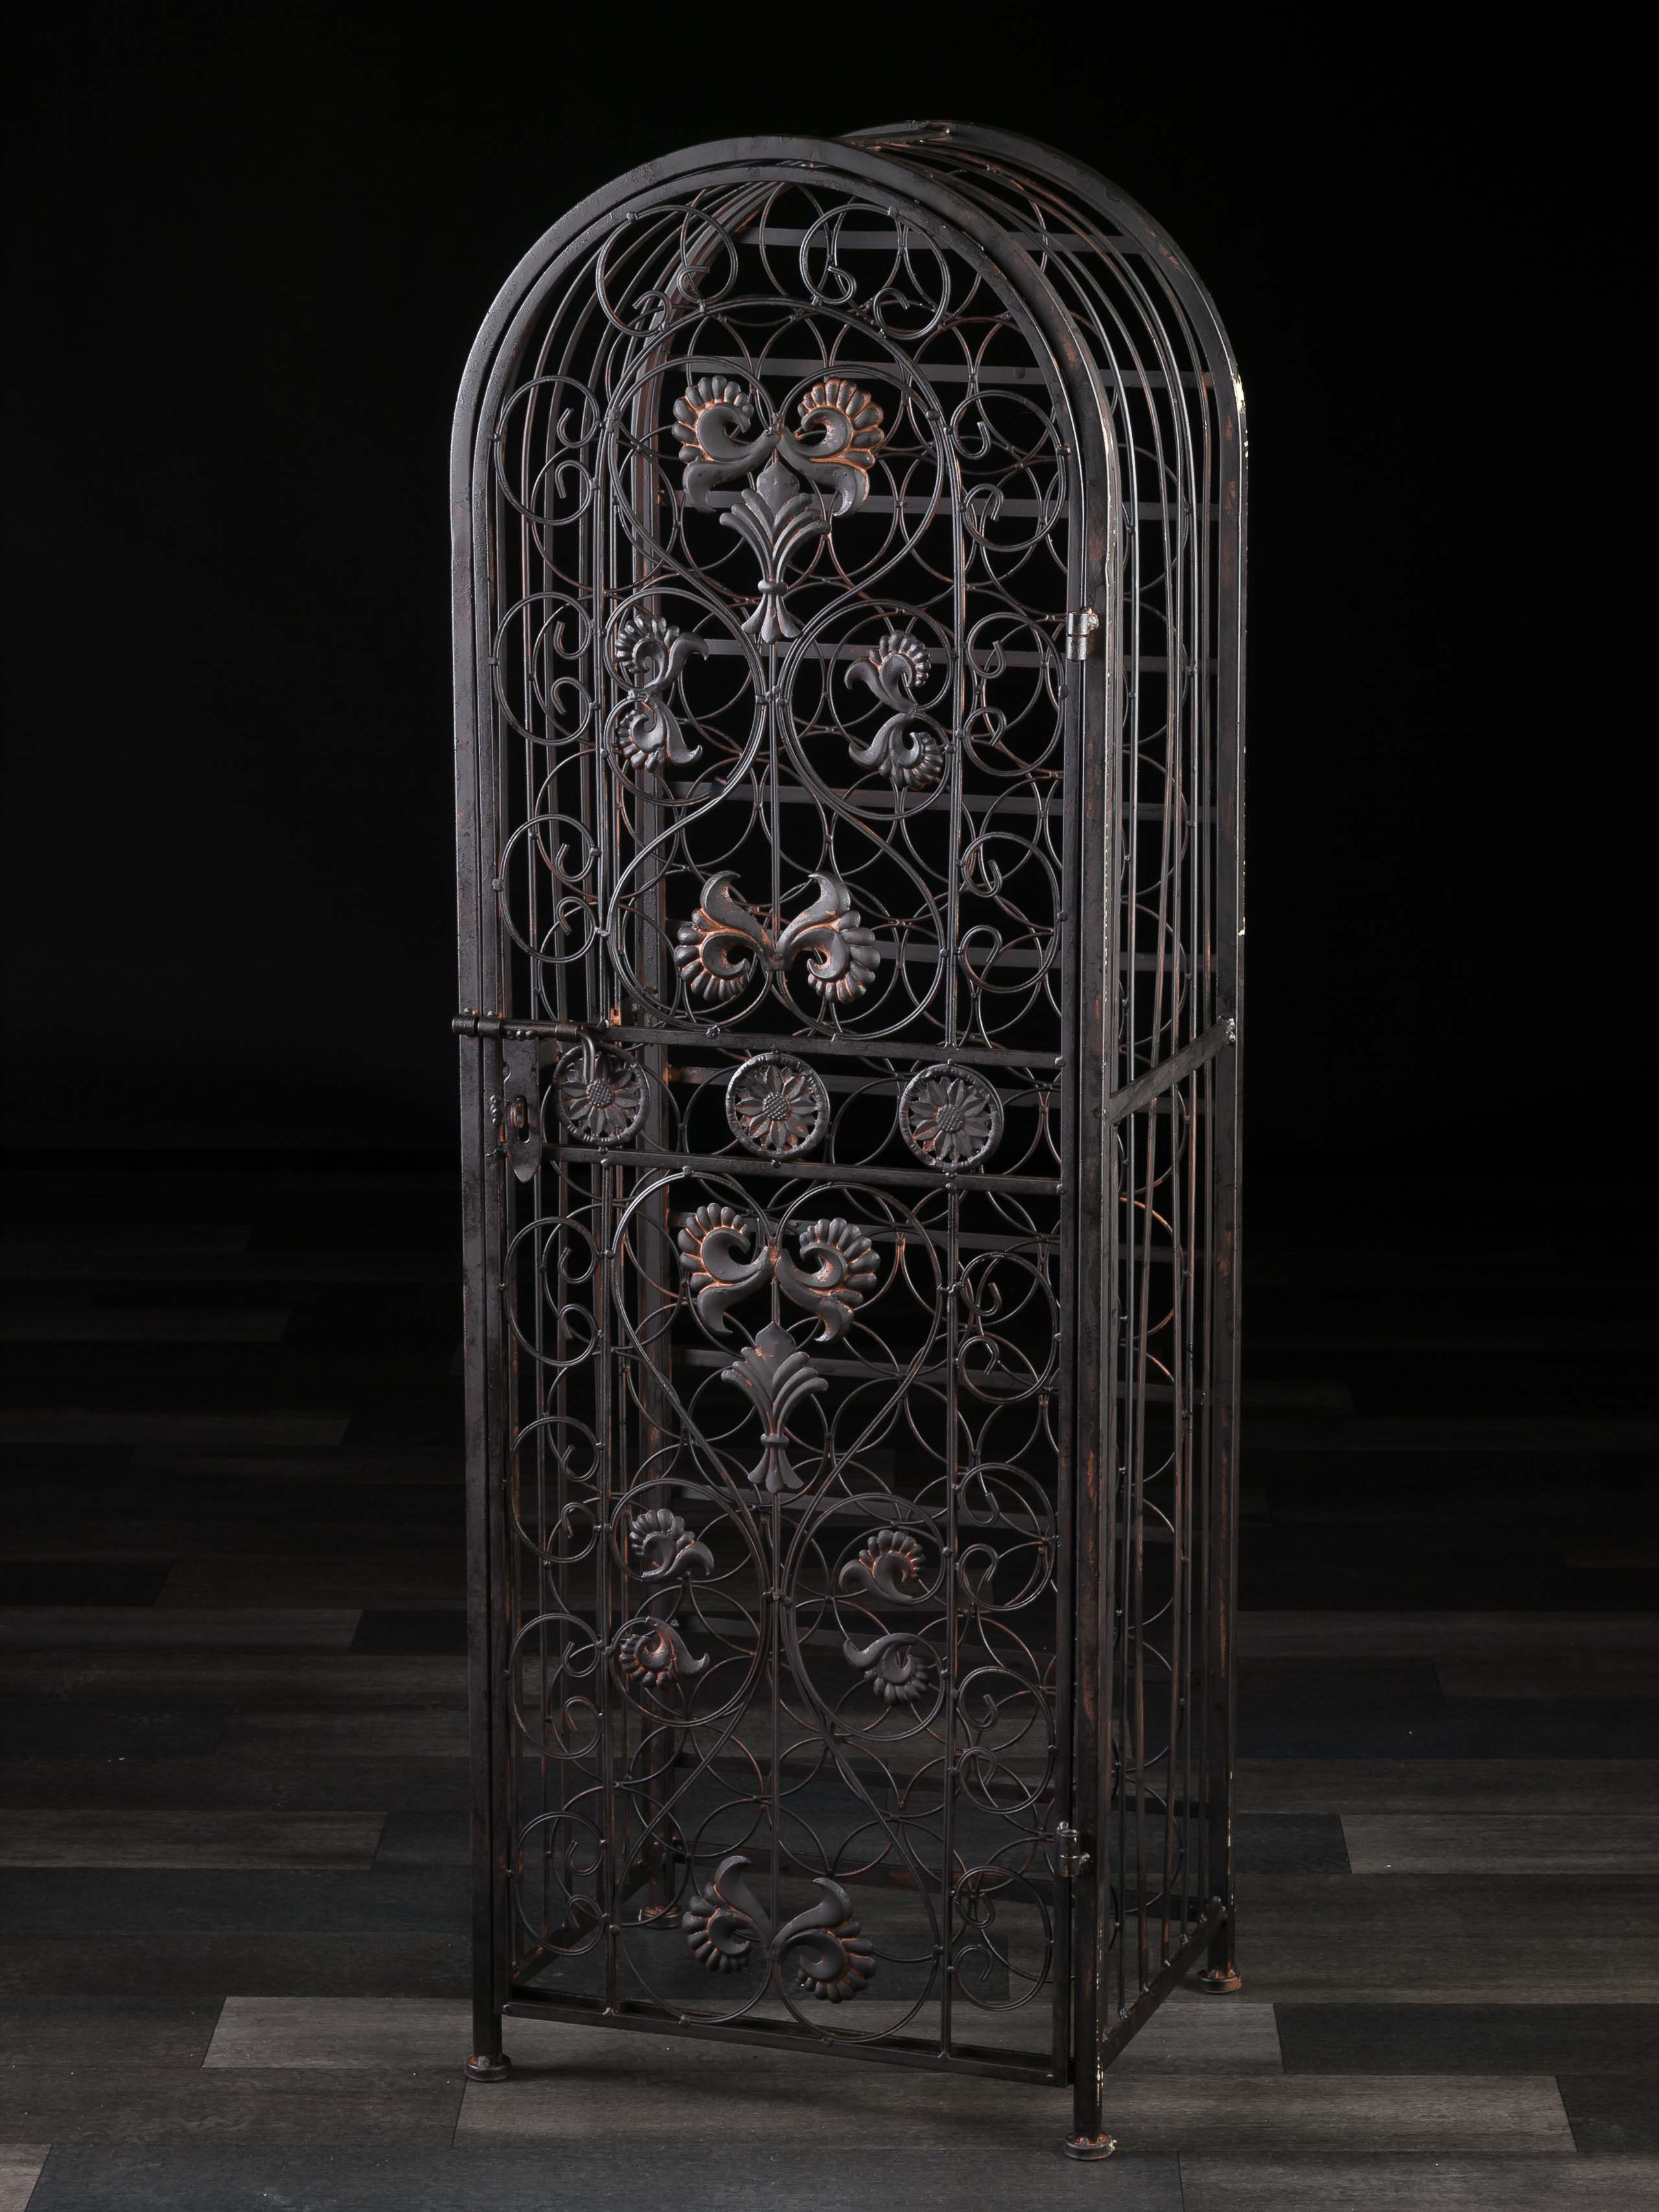 Antik Metall Wine Shelf Antique Style Fleur De Lis Metal Bottle Wine Rack Wine Cabinet Shelf